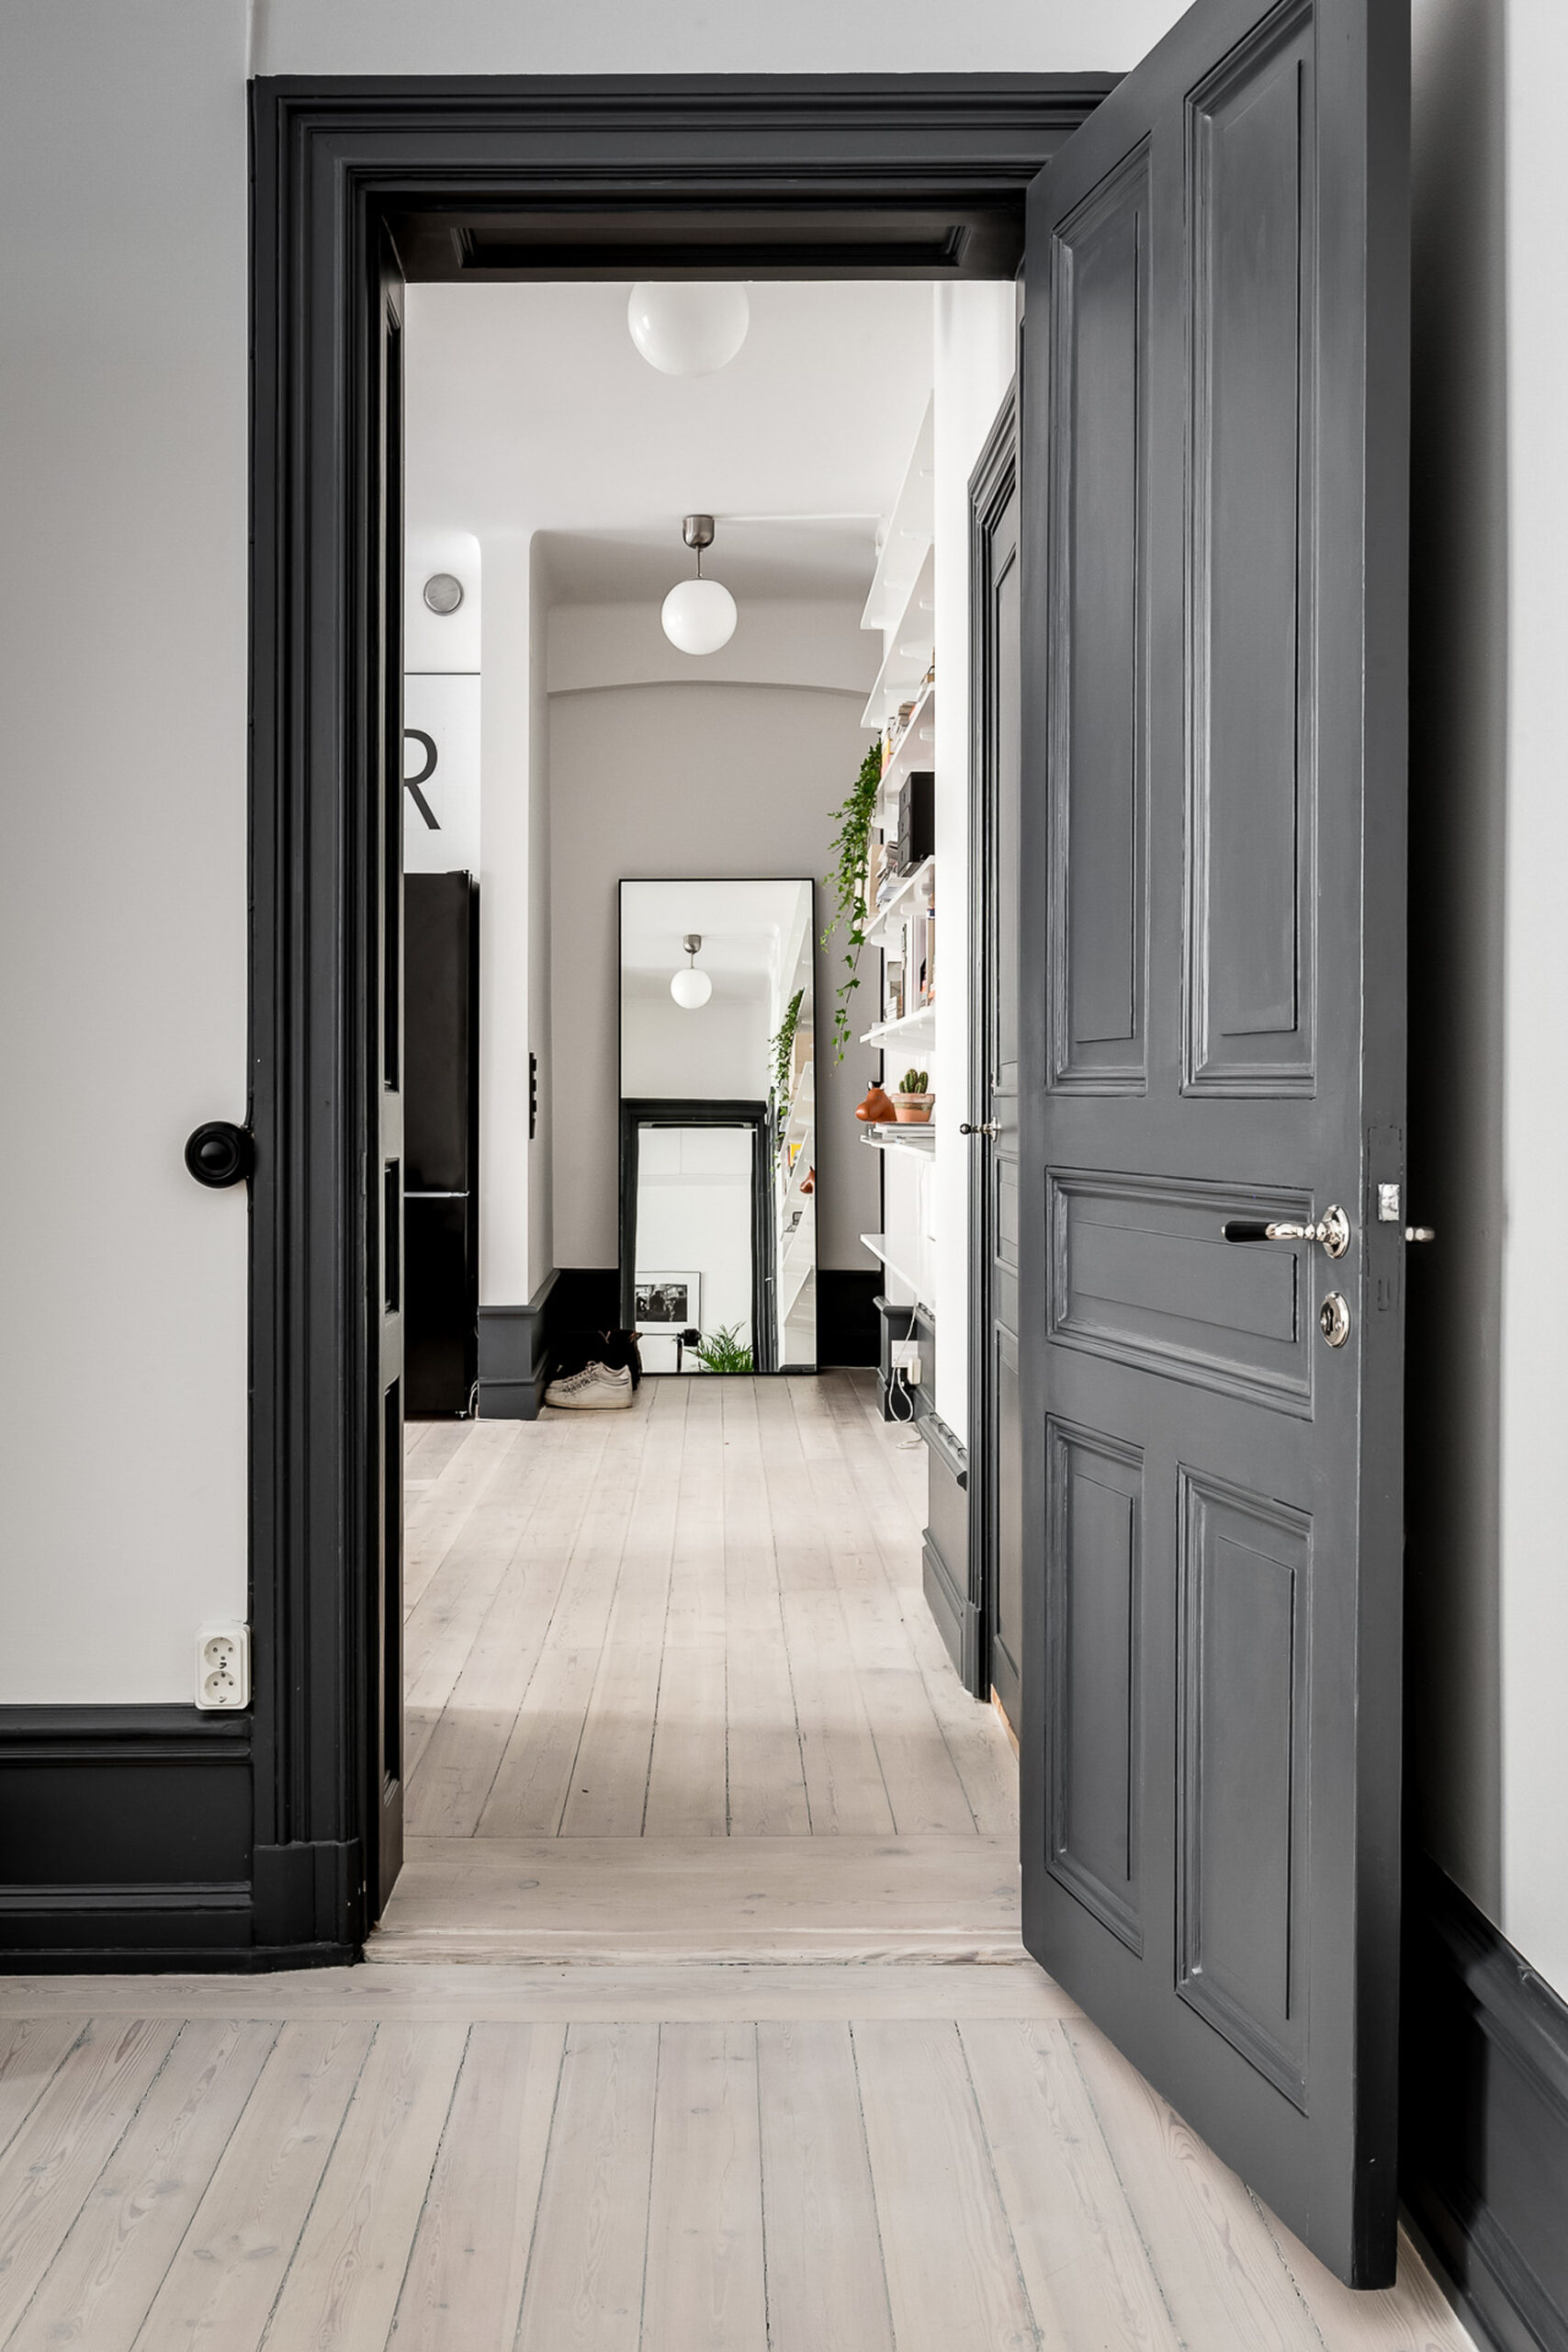 10 Colors That Go With Charcoal Gray Walls - Photo by Alexander White via Coco Lapine Design